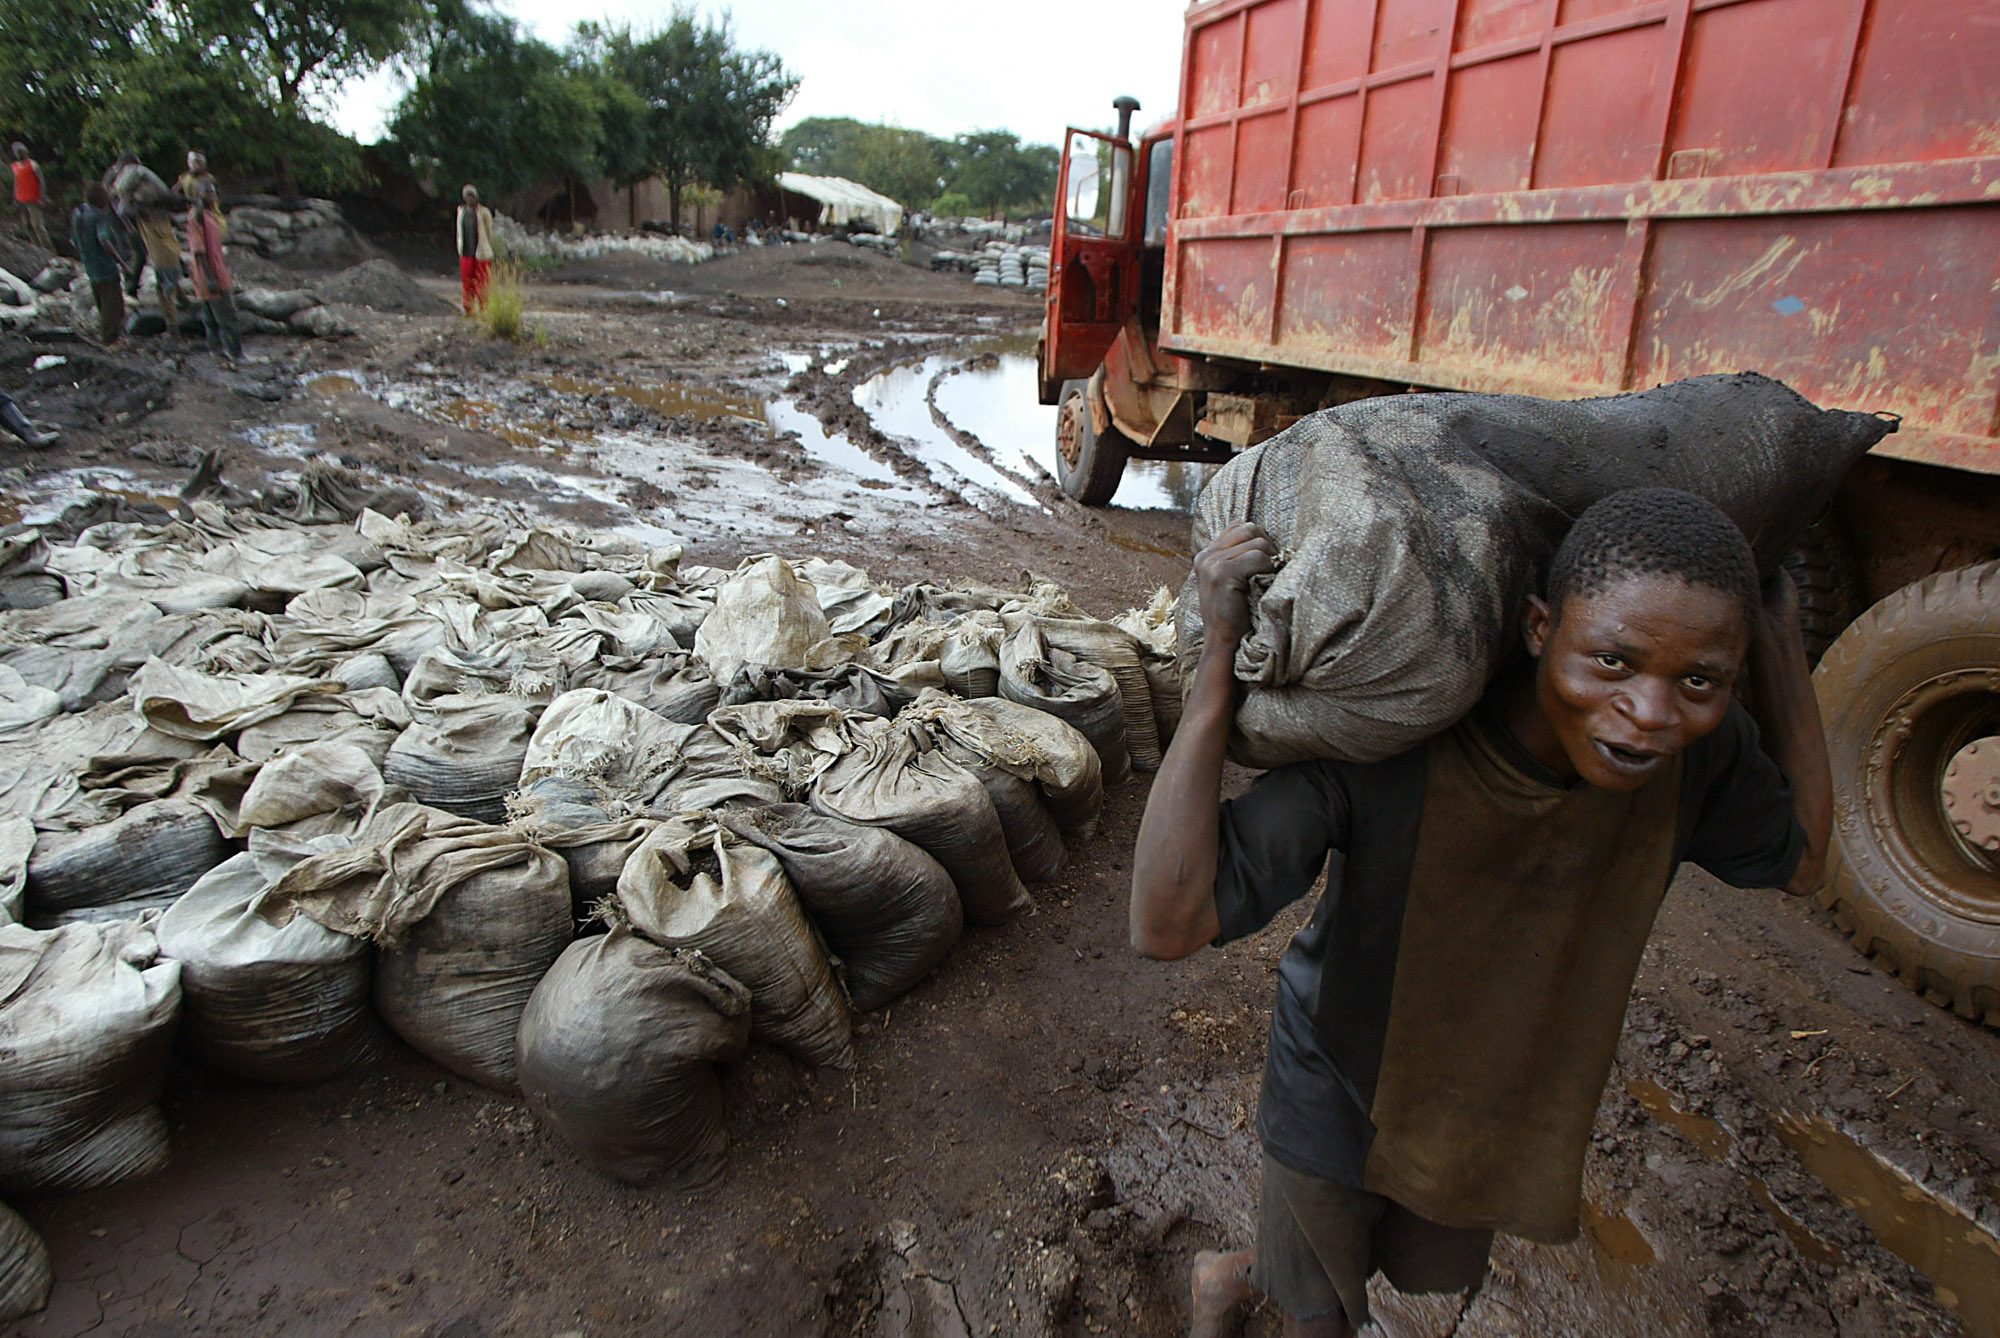 In this April 2004 file photo, a young man carries wet Cobalt on his back at the Shinkolobwe Cobalt mine, situated 35km from the town of Likasi, in th...